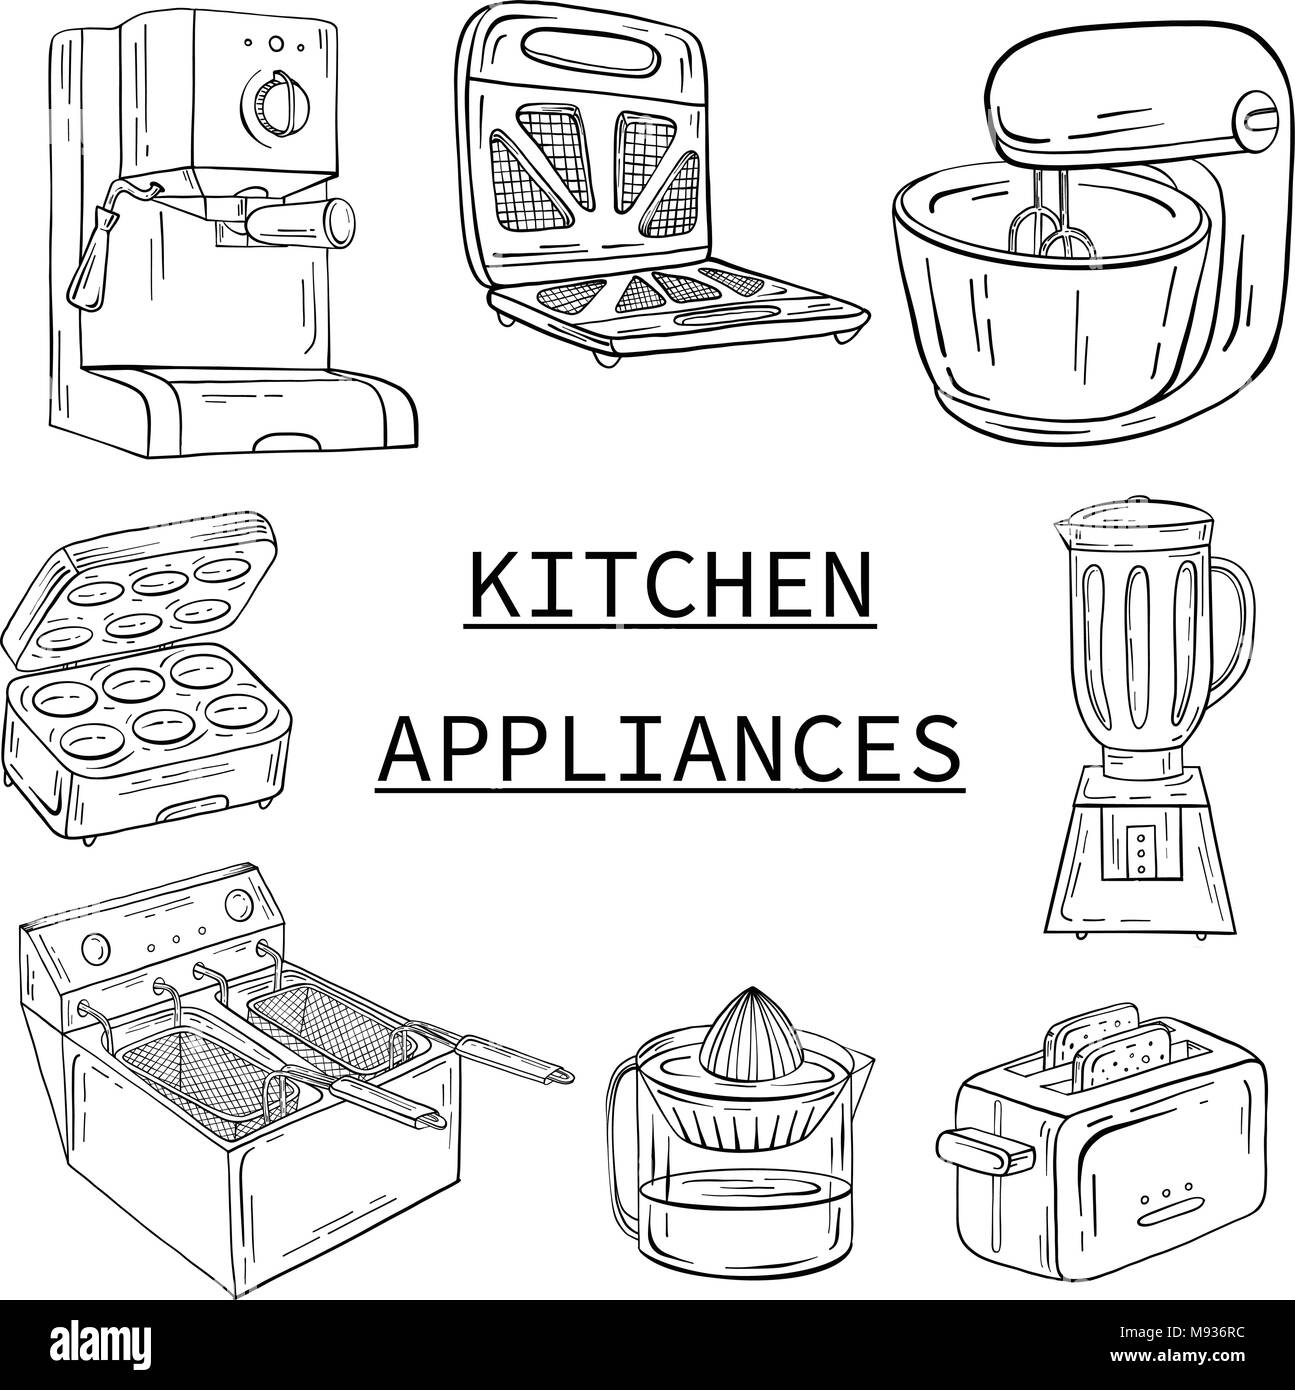 Household appliances for the kitchen, cafe and restaurant. Vecto - Stock Image